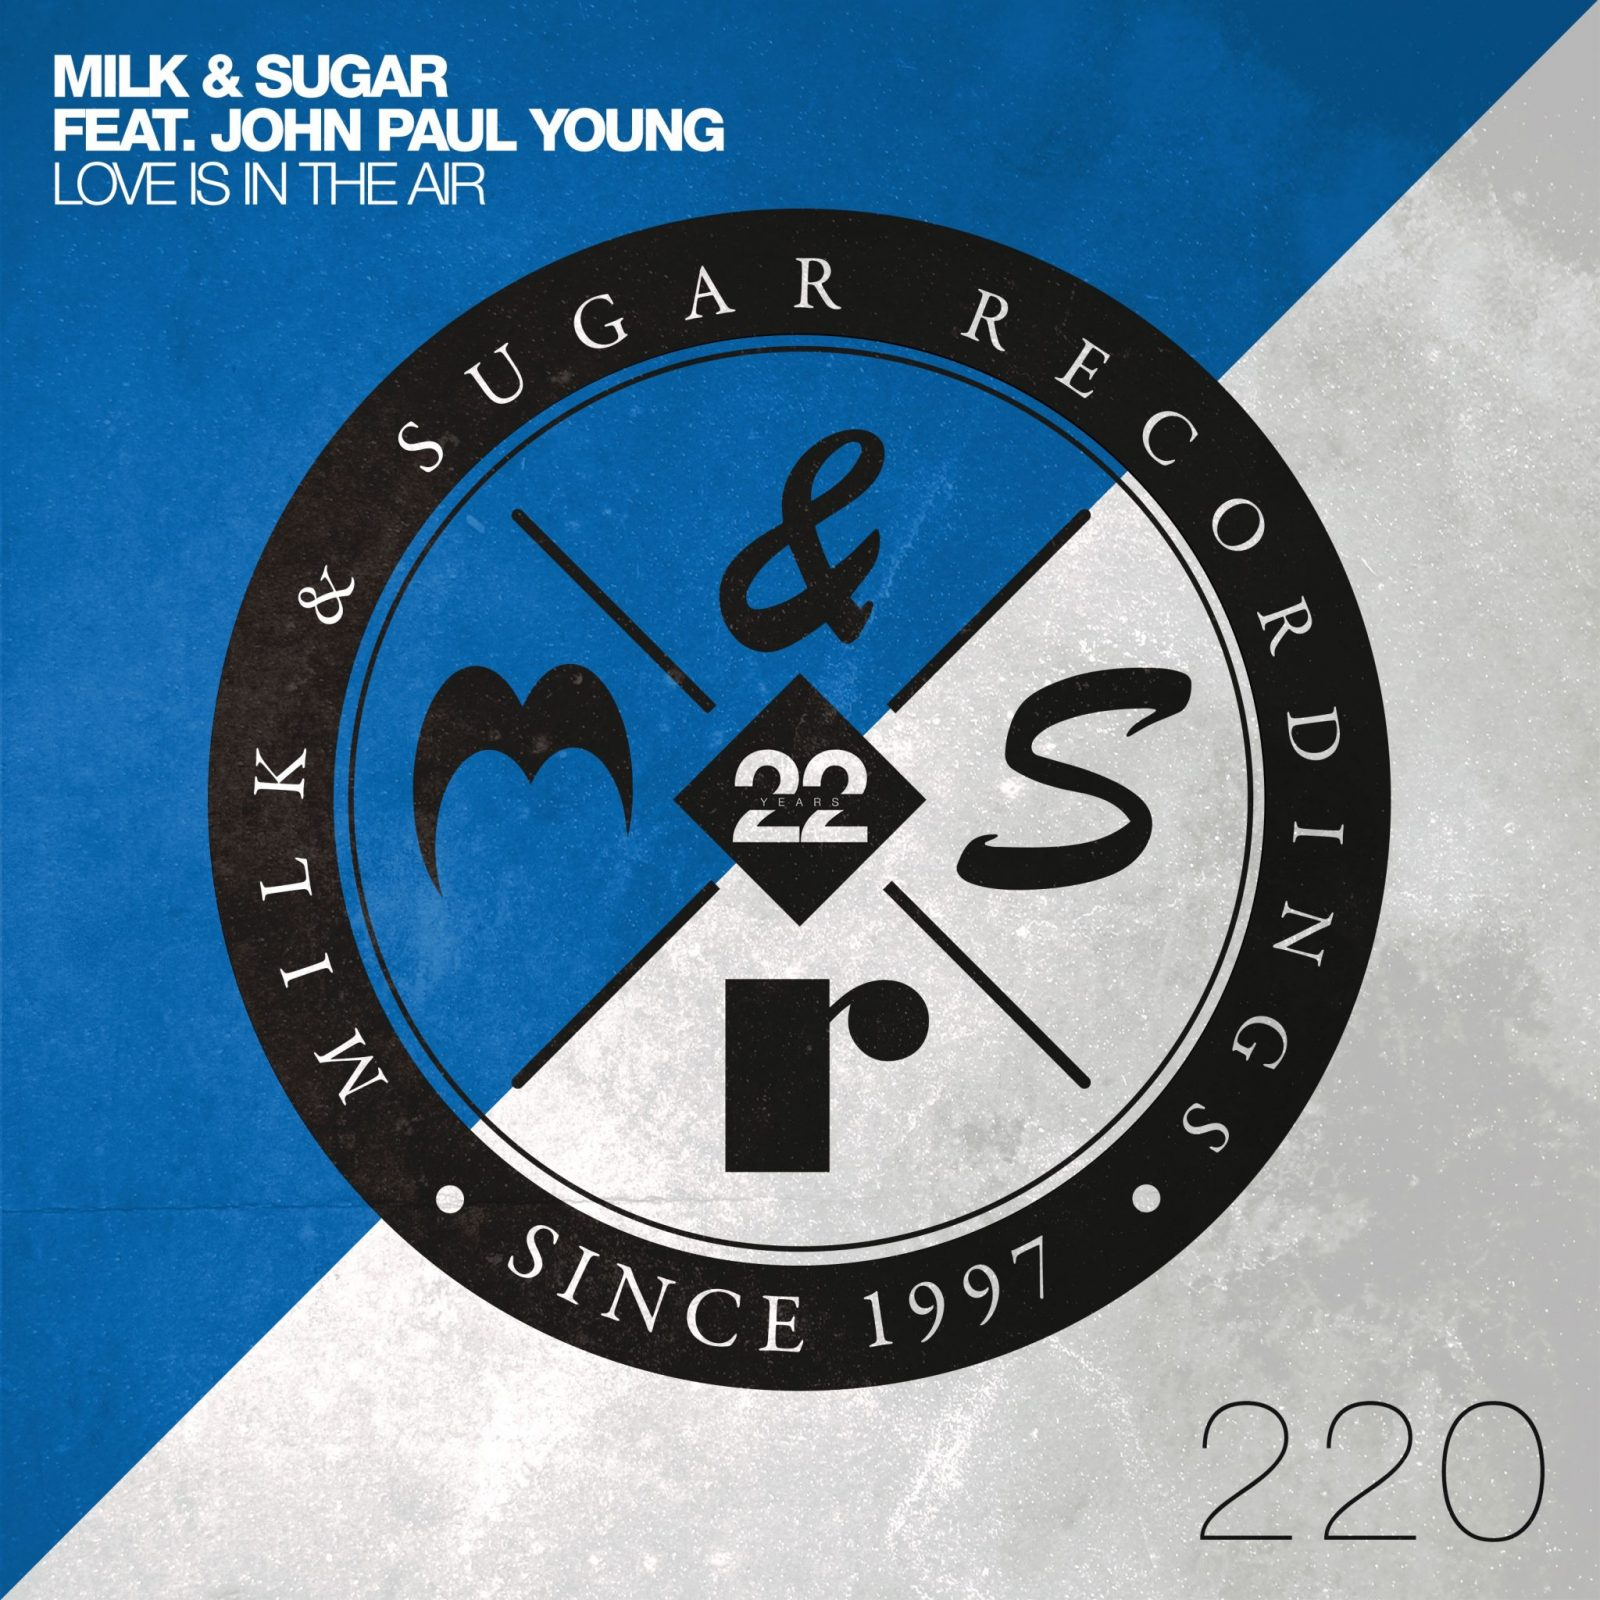 MILK & SUGAR - LOVE IS IN THE AIR (FEAT. JOHN PAUL YOUNG)